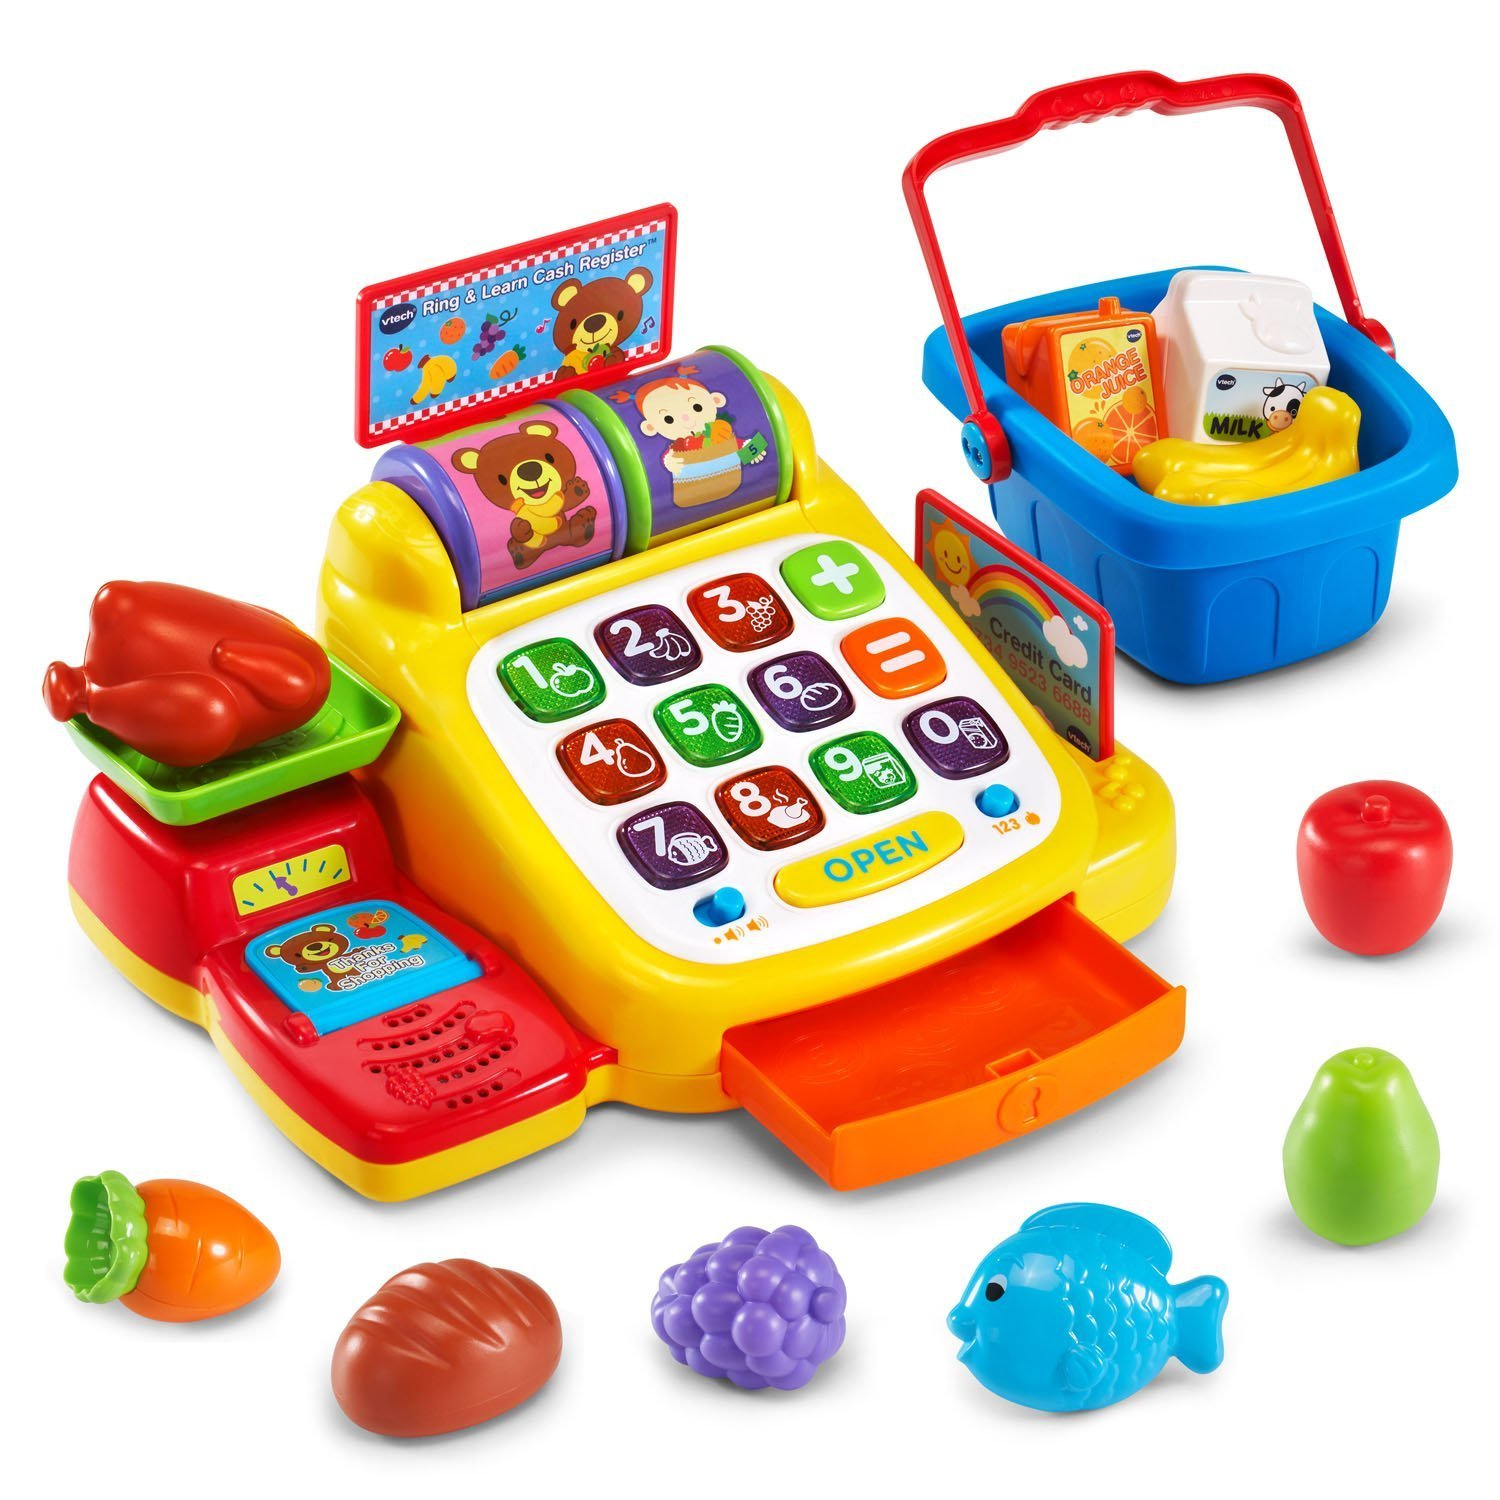 Amazon.com: VTech Ring and Learn Cash Register for just $14.98!